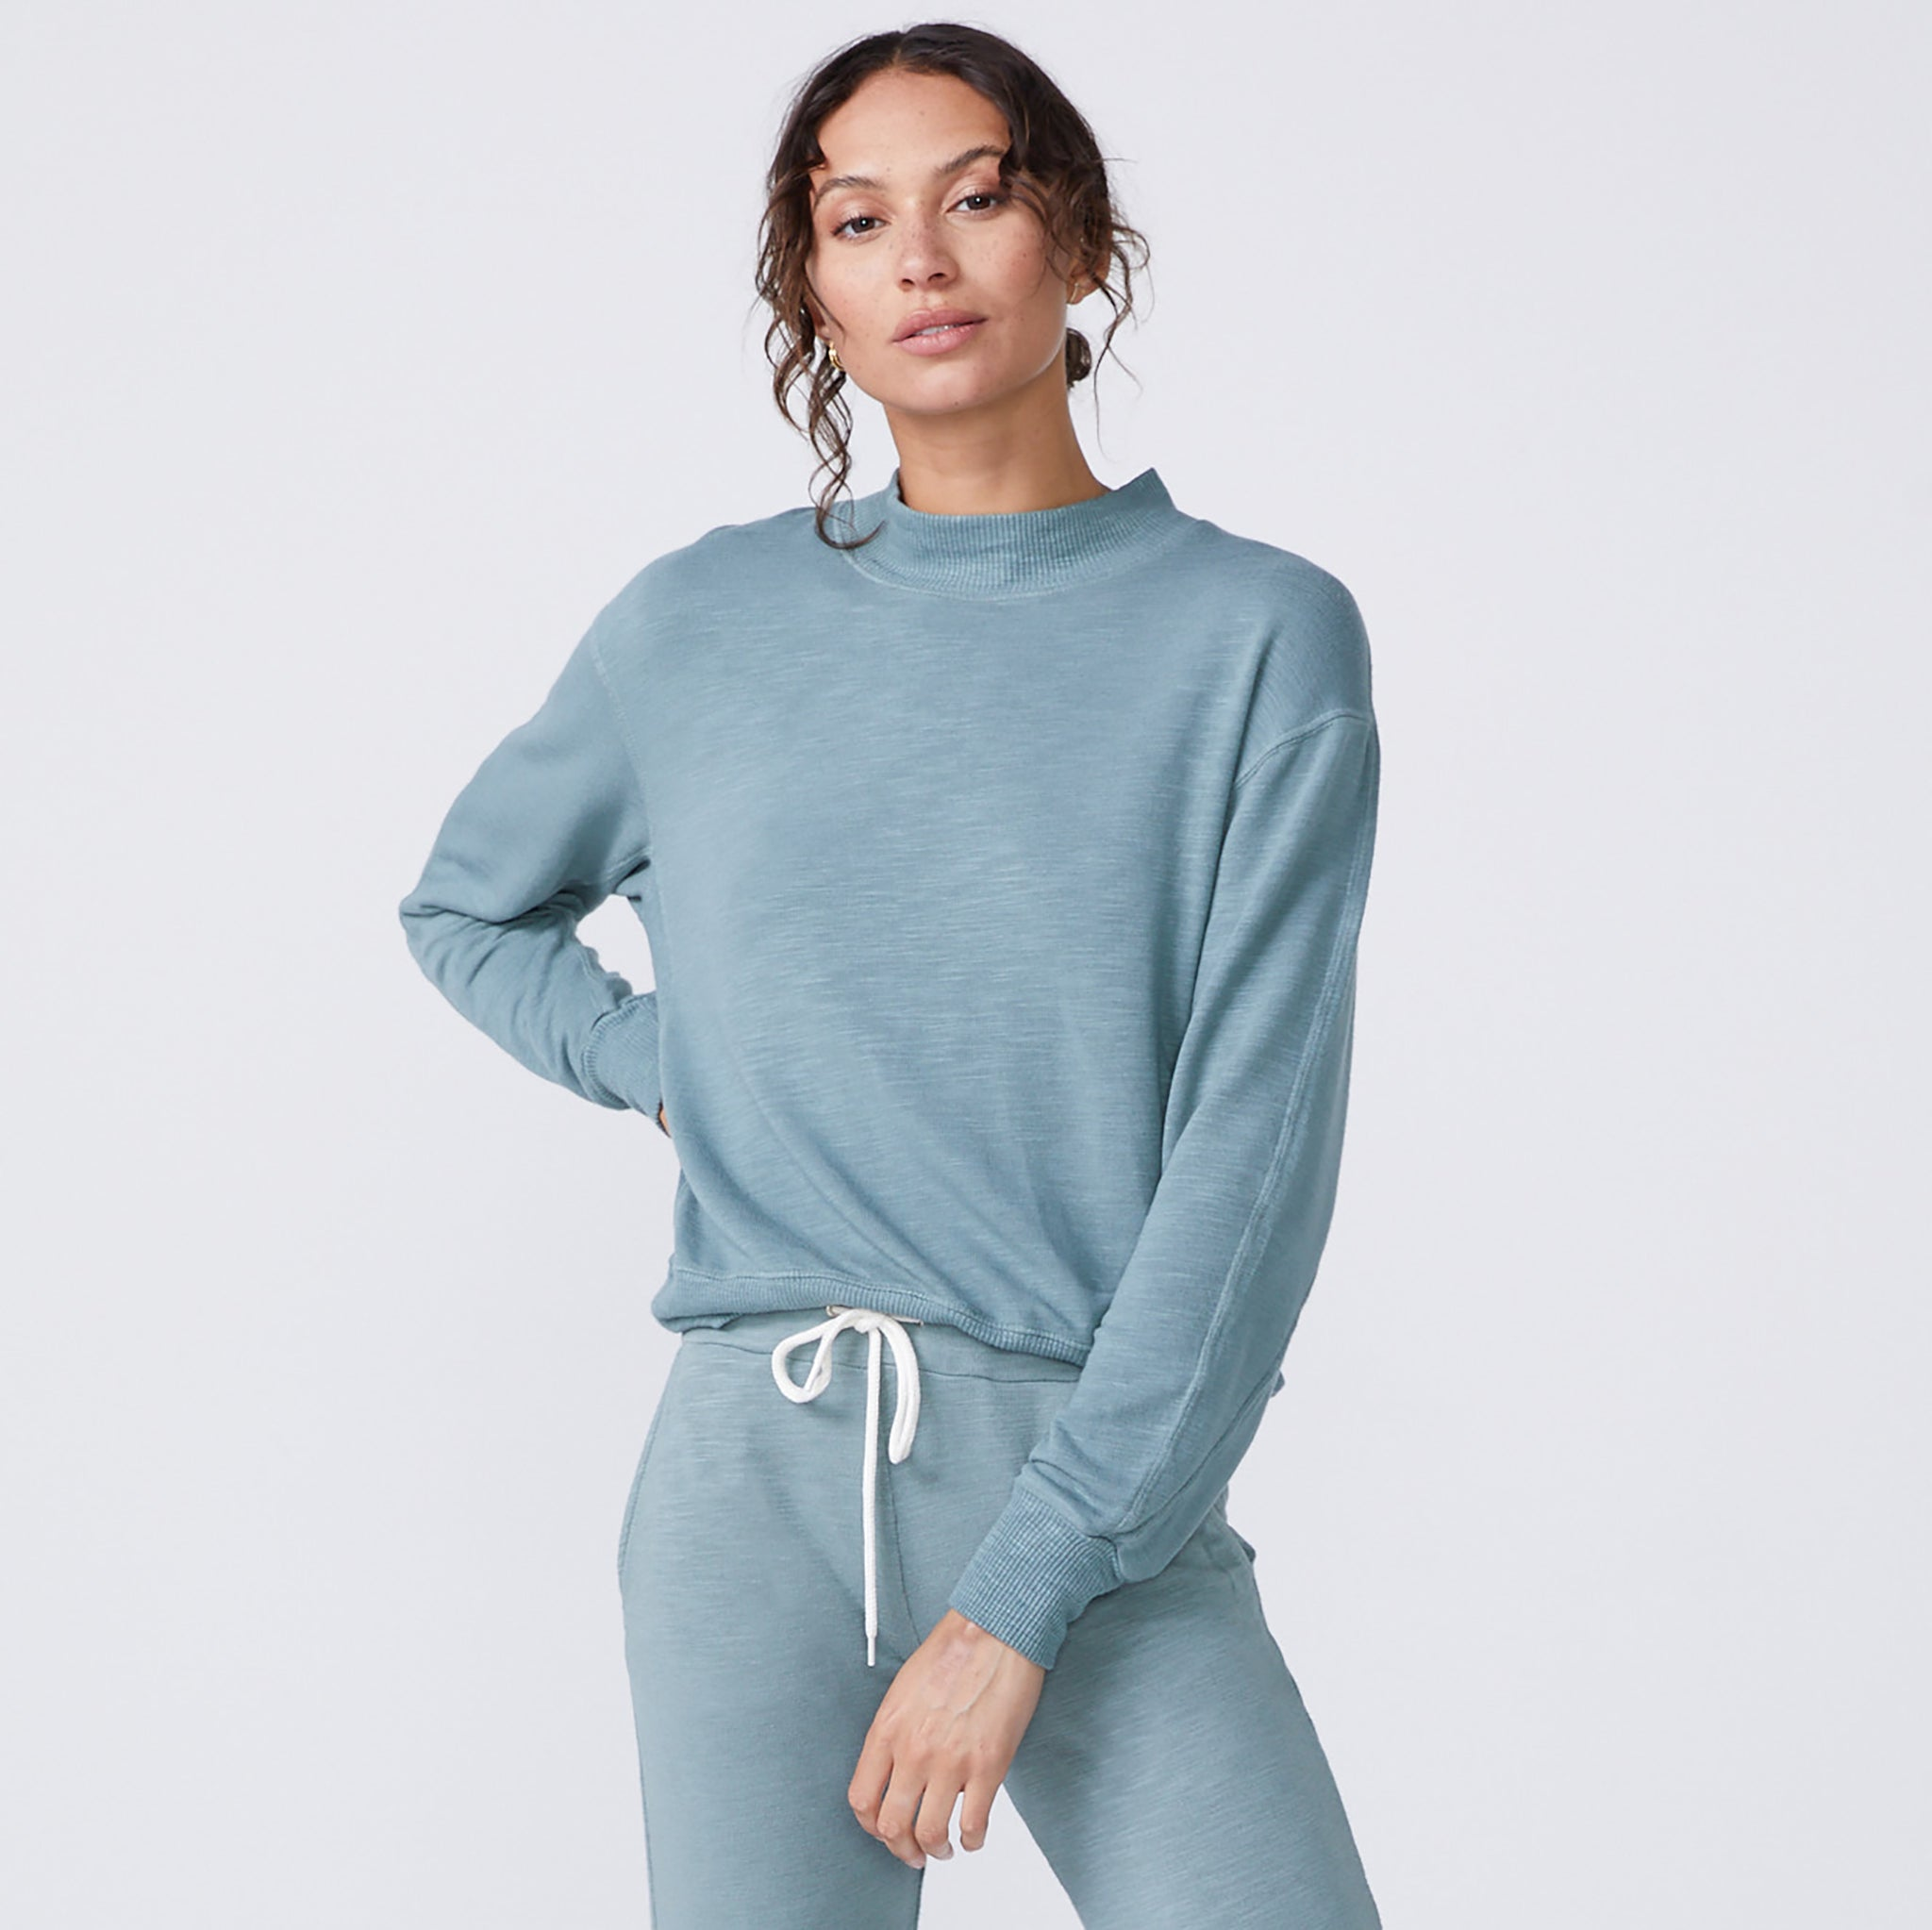 Supersoft Mock Neck Seamed Sweatshirt (6194333647030)